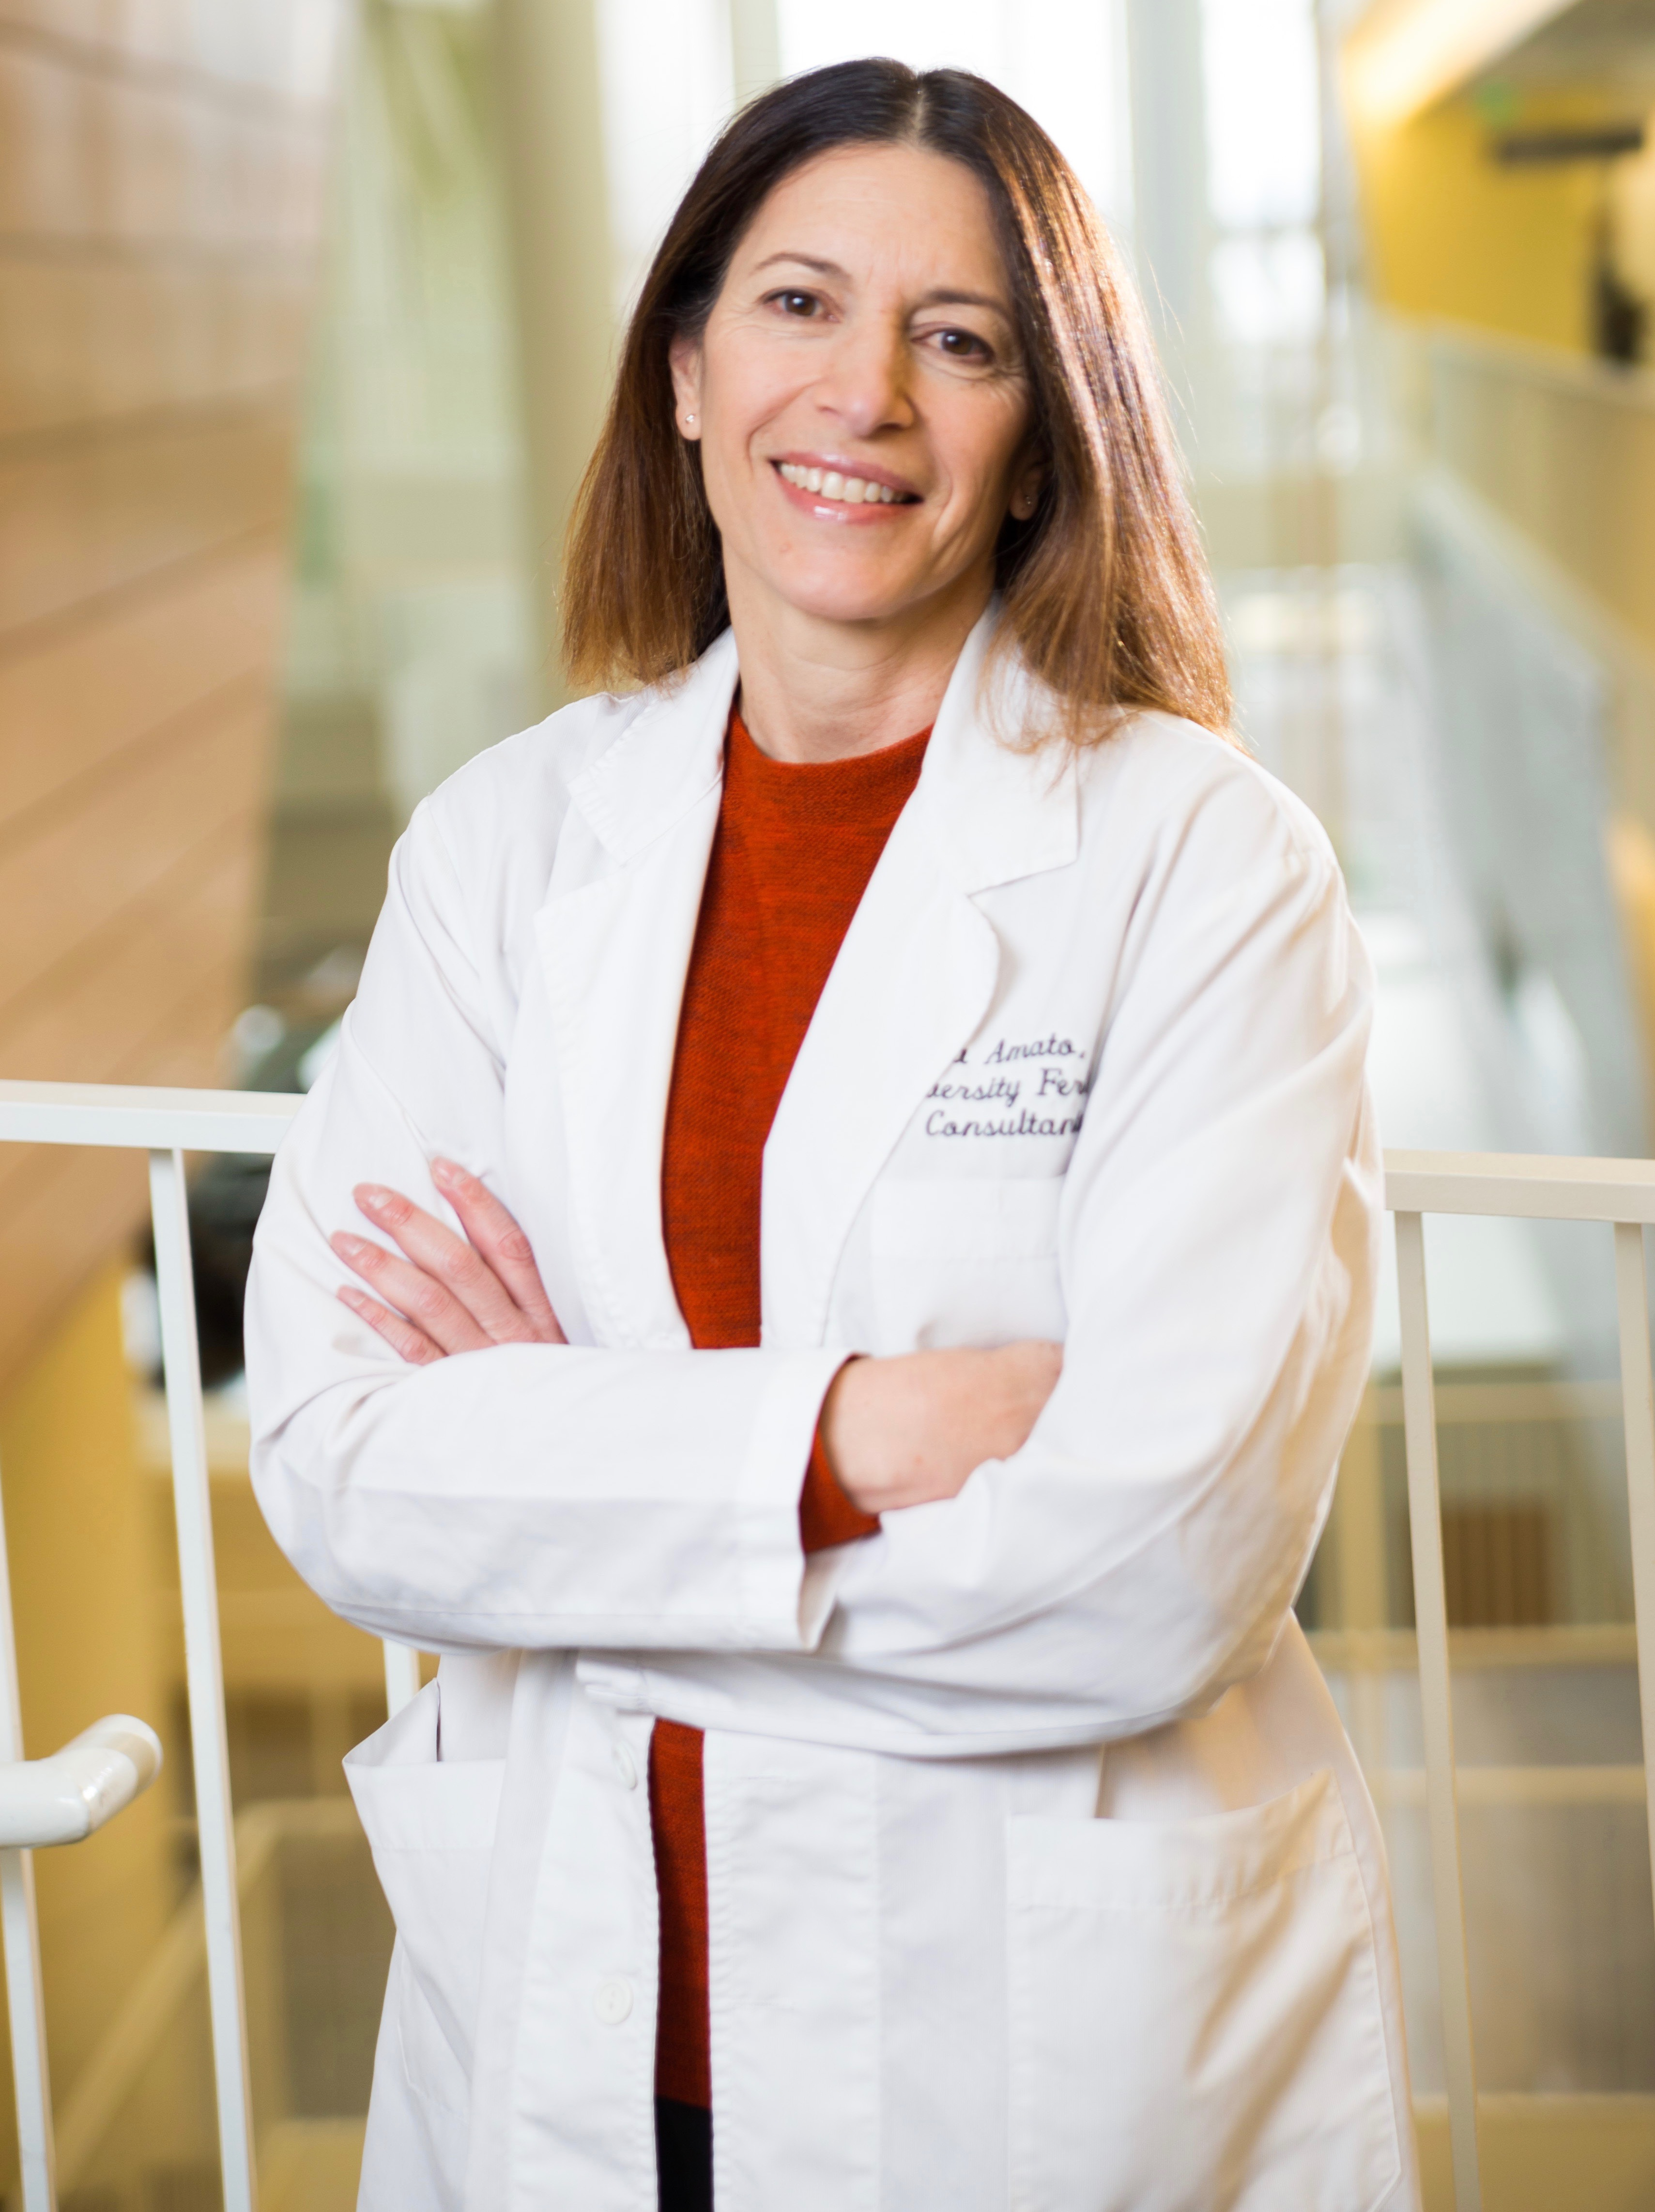 Dr. Paula Amato, an expert in fertility, includes transgender care among her focus areas.